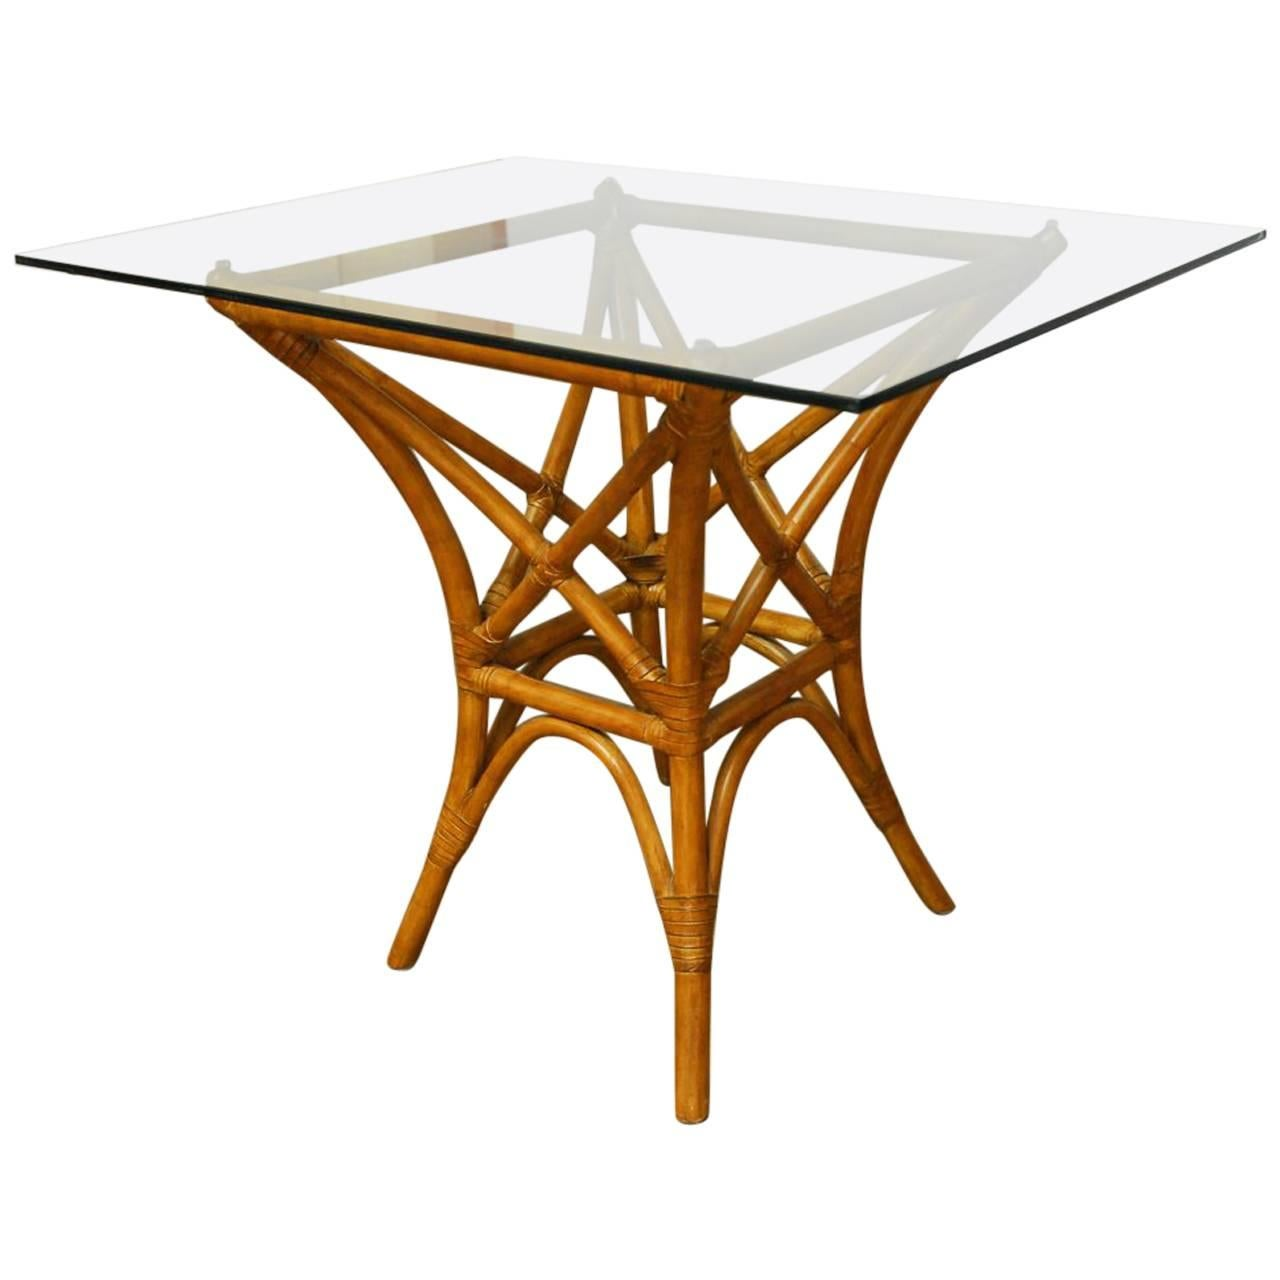 McGuire Style Bamboo Rattan Dining Table